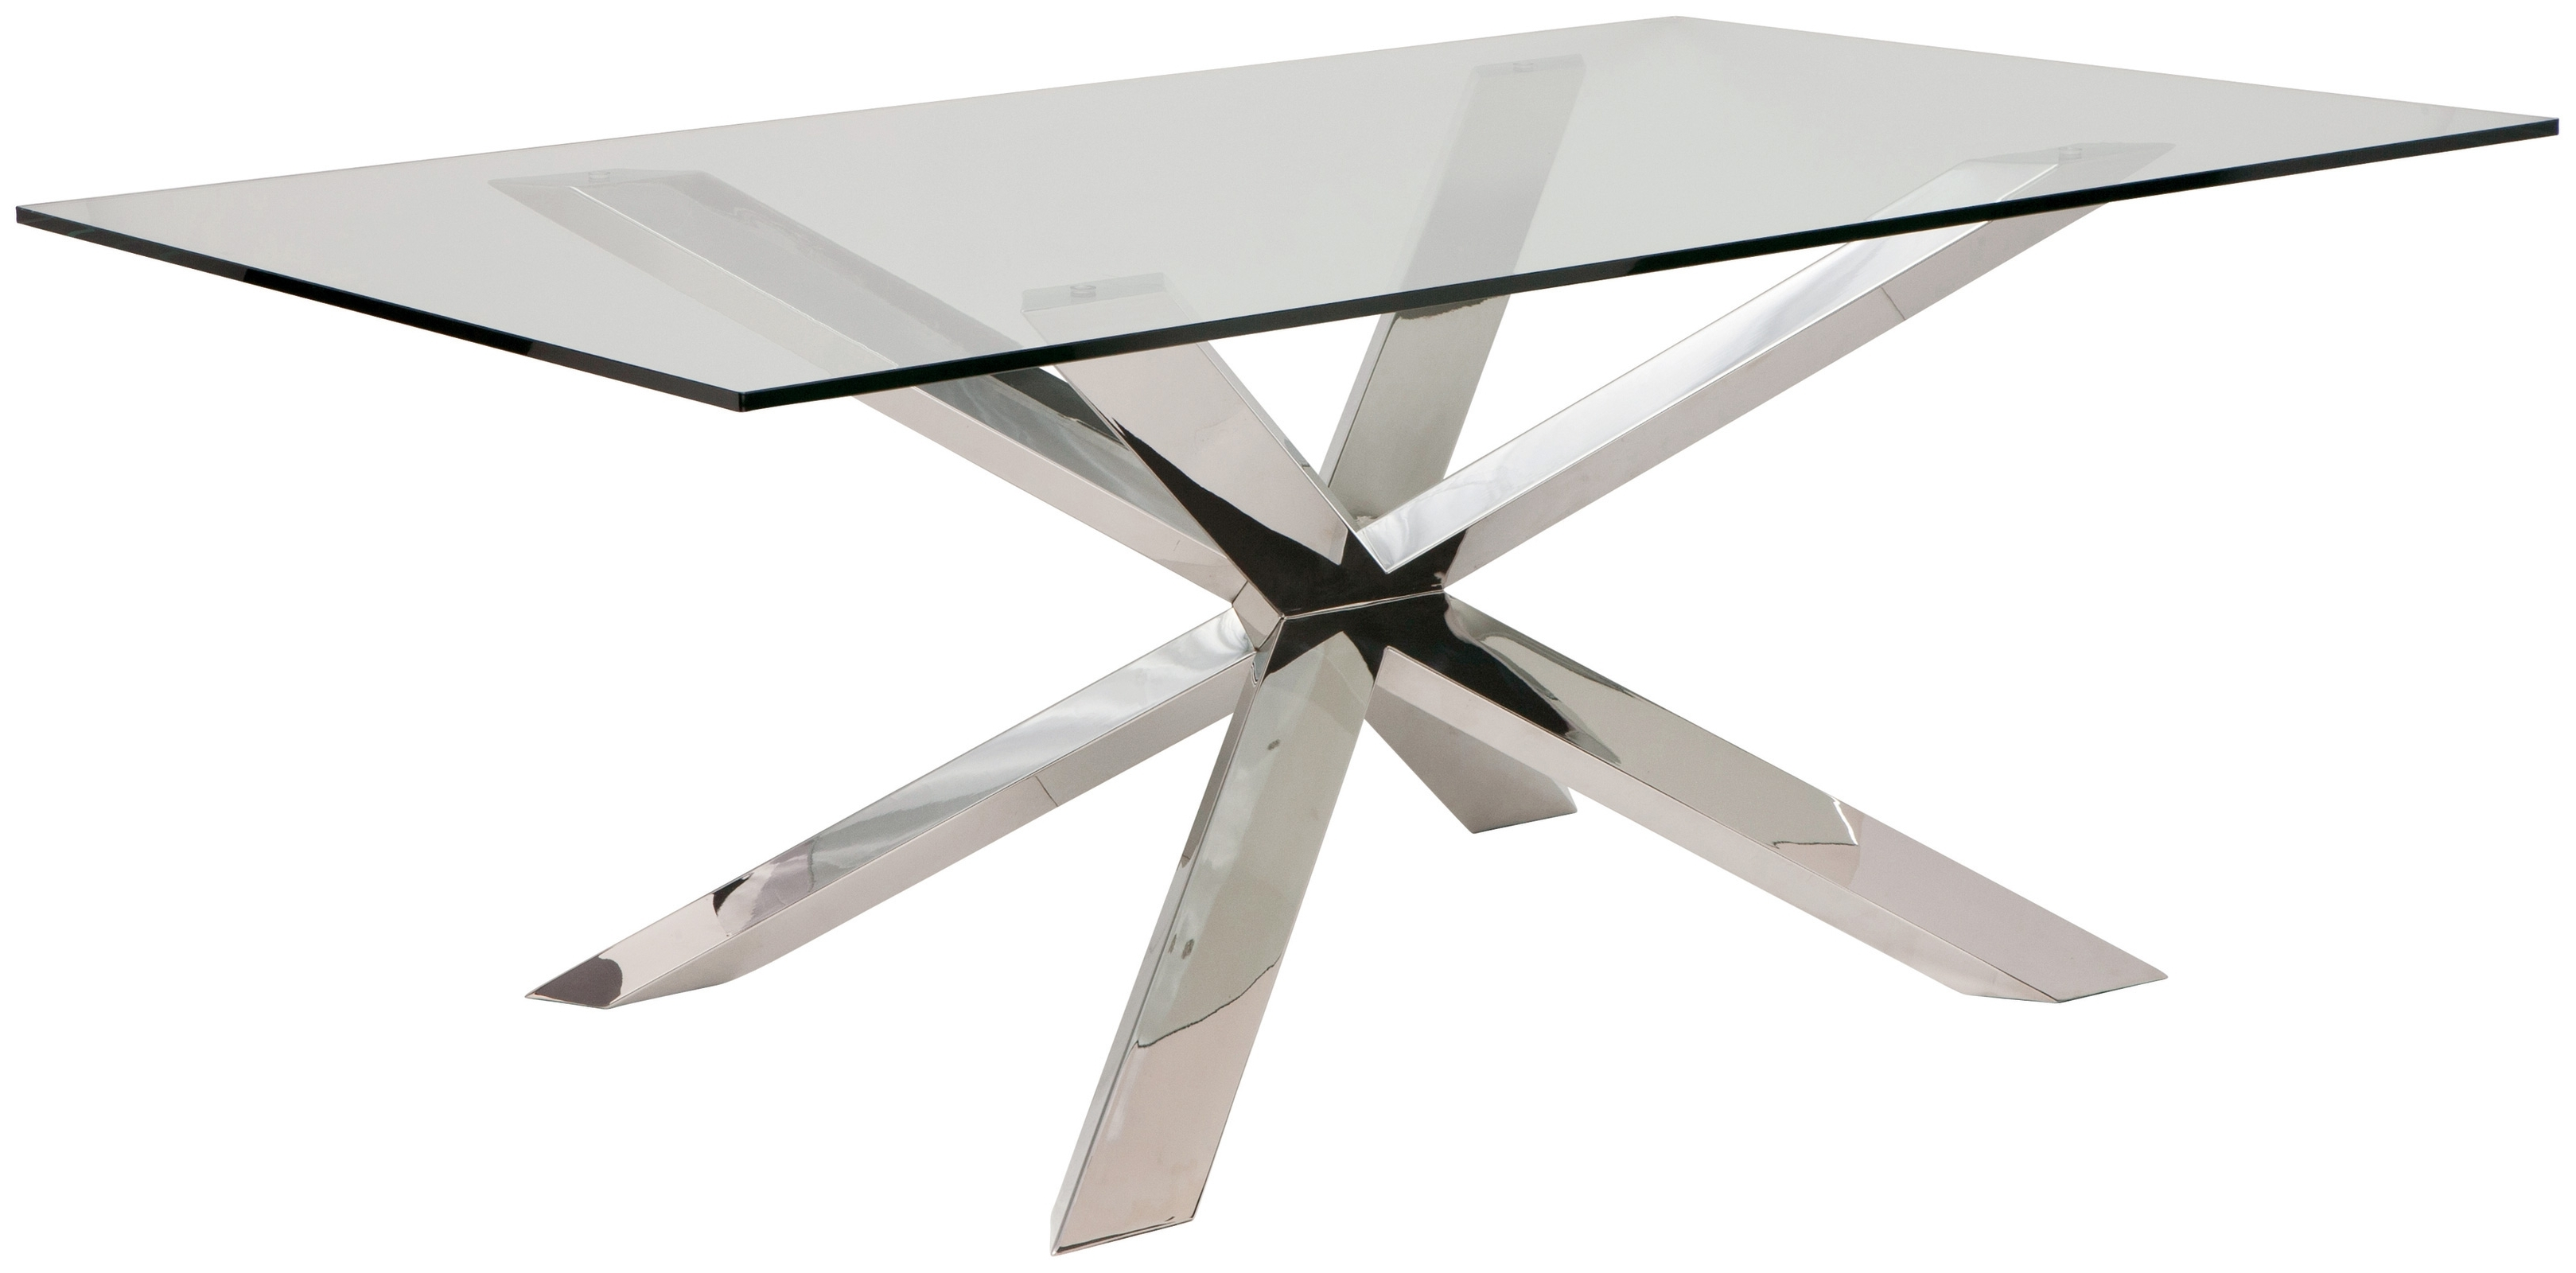 Most Popular Glass And Stainless Steel Dining Tables Pertaining To Couture 78 Inch Dining Table In Polished Silver Stainless Steel And (View 18 of 25)